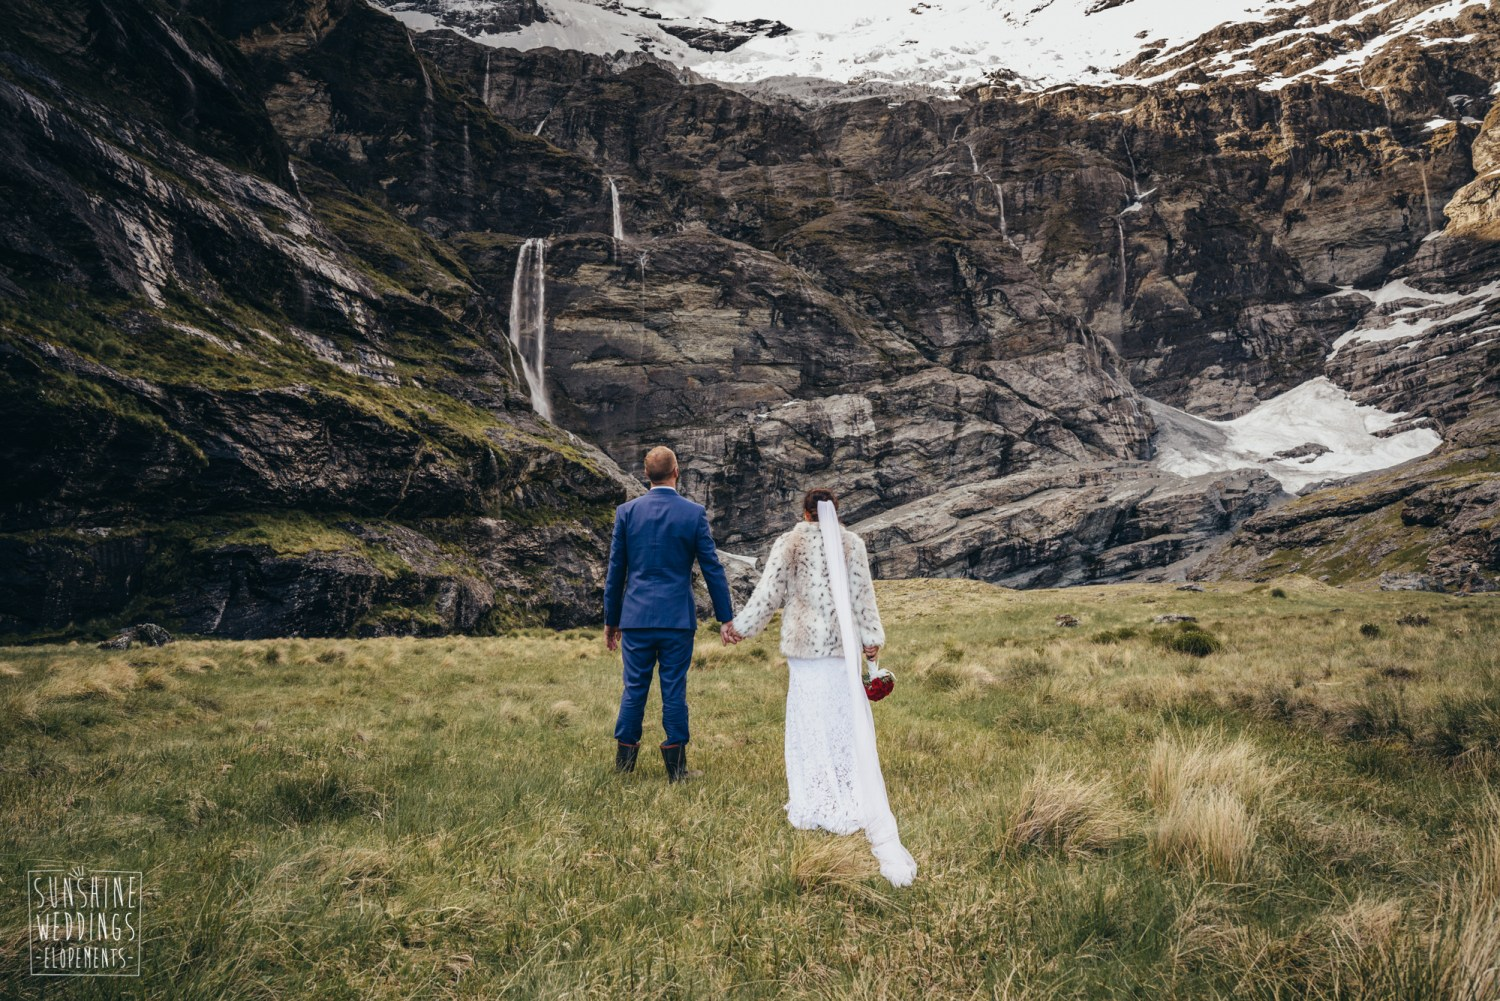 The hobbie film location, Earnslaw Burn wedding photography, Earnslaw Glacier, mountain wedding ceremony